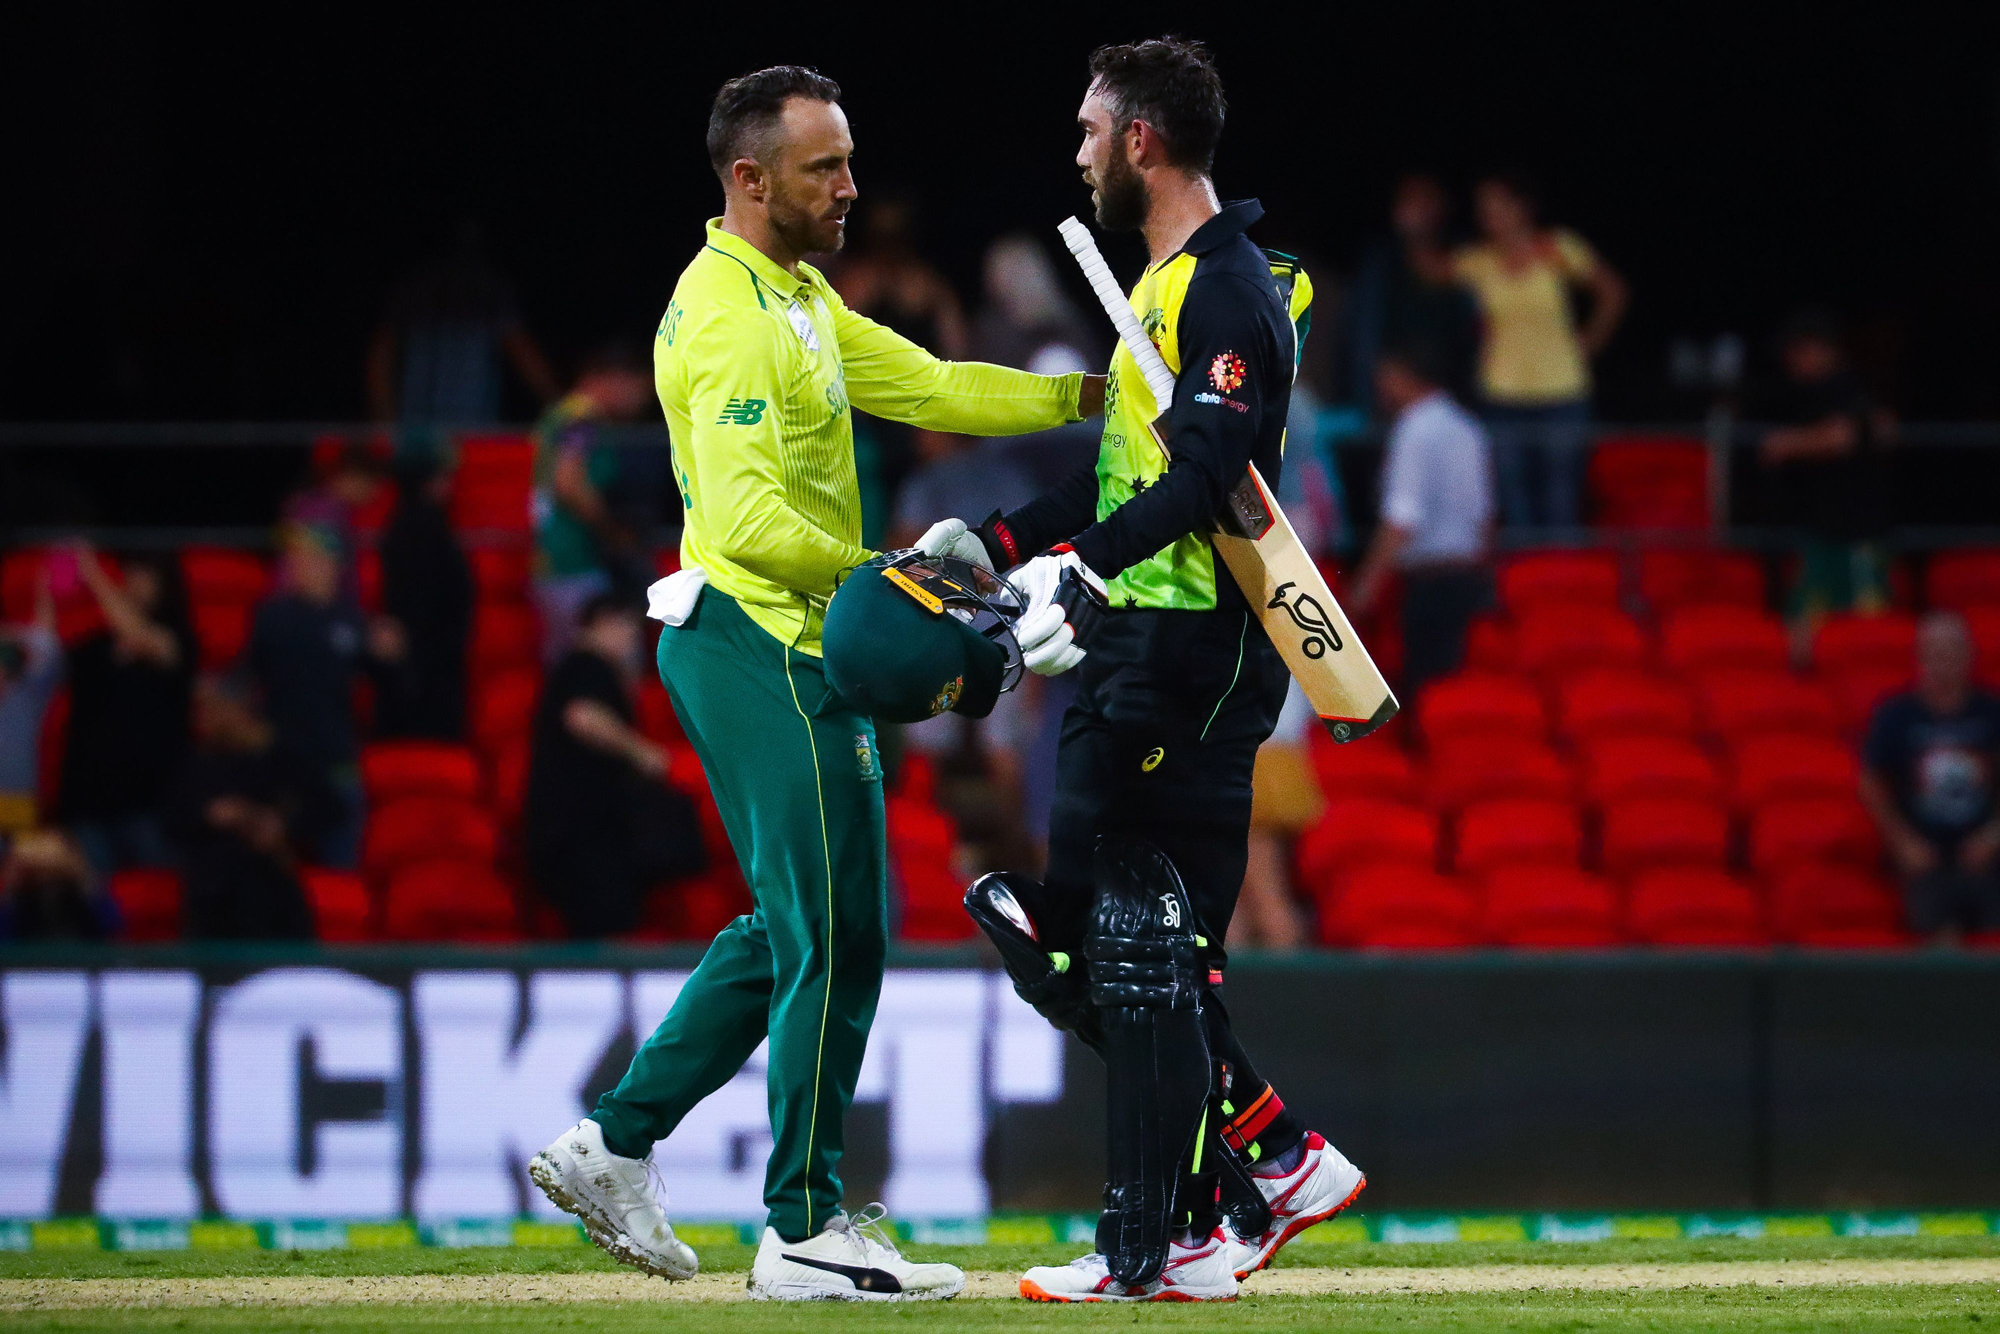 Glenn Maxwell (R) of Australia congratulates Faf du Plessis (l) of South Africa during the T20 international cricket match between Australia and South Africa at Metricon Stadium on the Gold Coast on November 17, 2018. (Photo by Patrick HAMILTON / AFP) / -